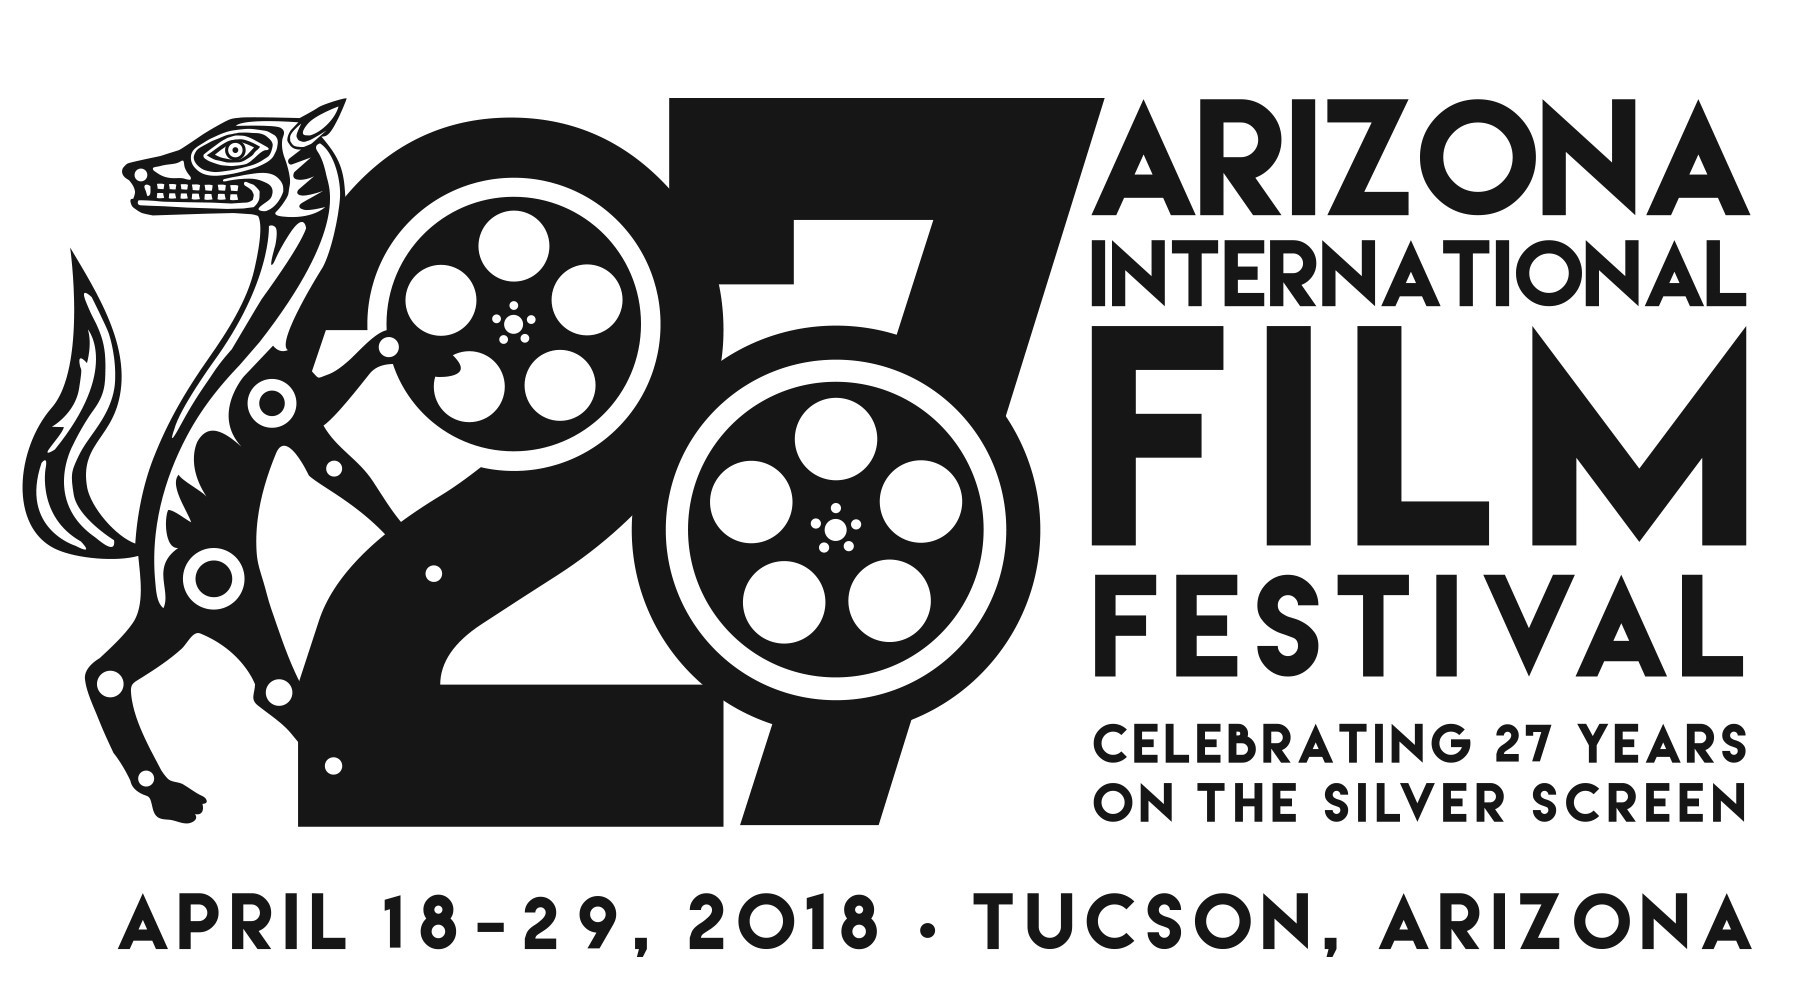 Screening Date announced on their website March 12th 2018